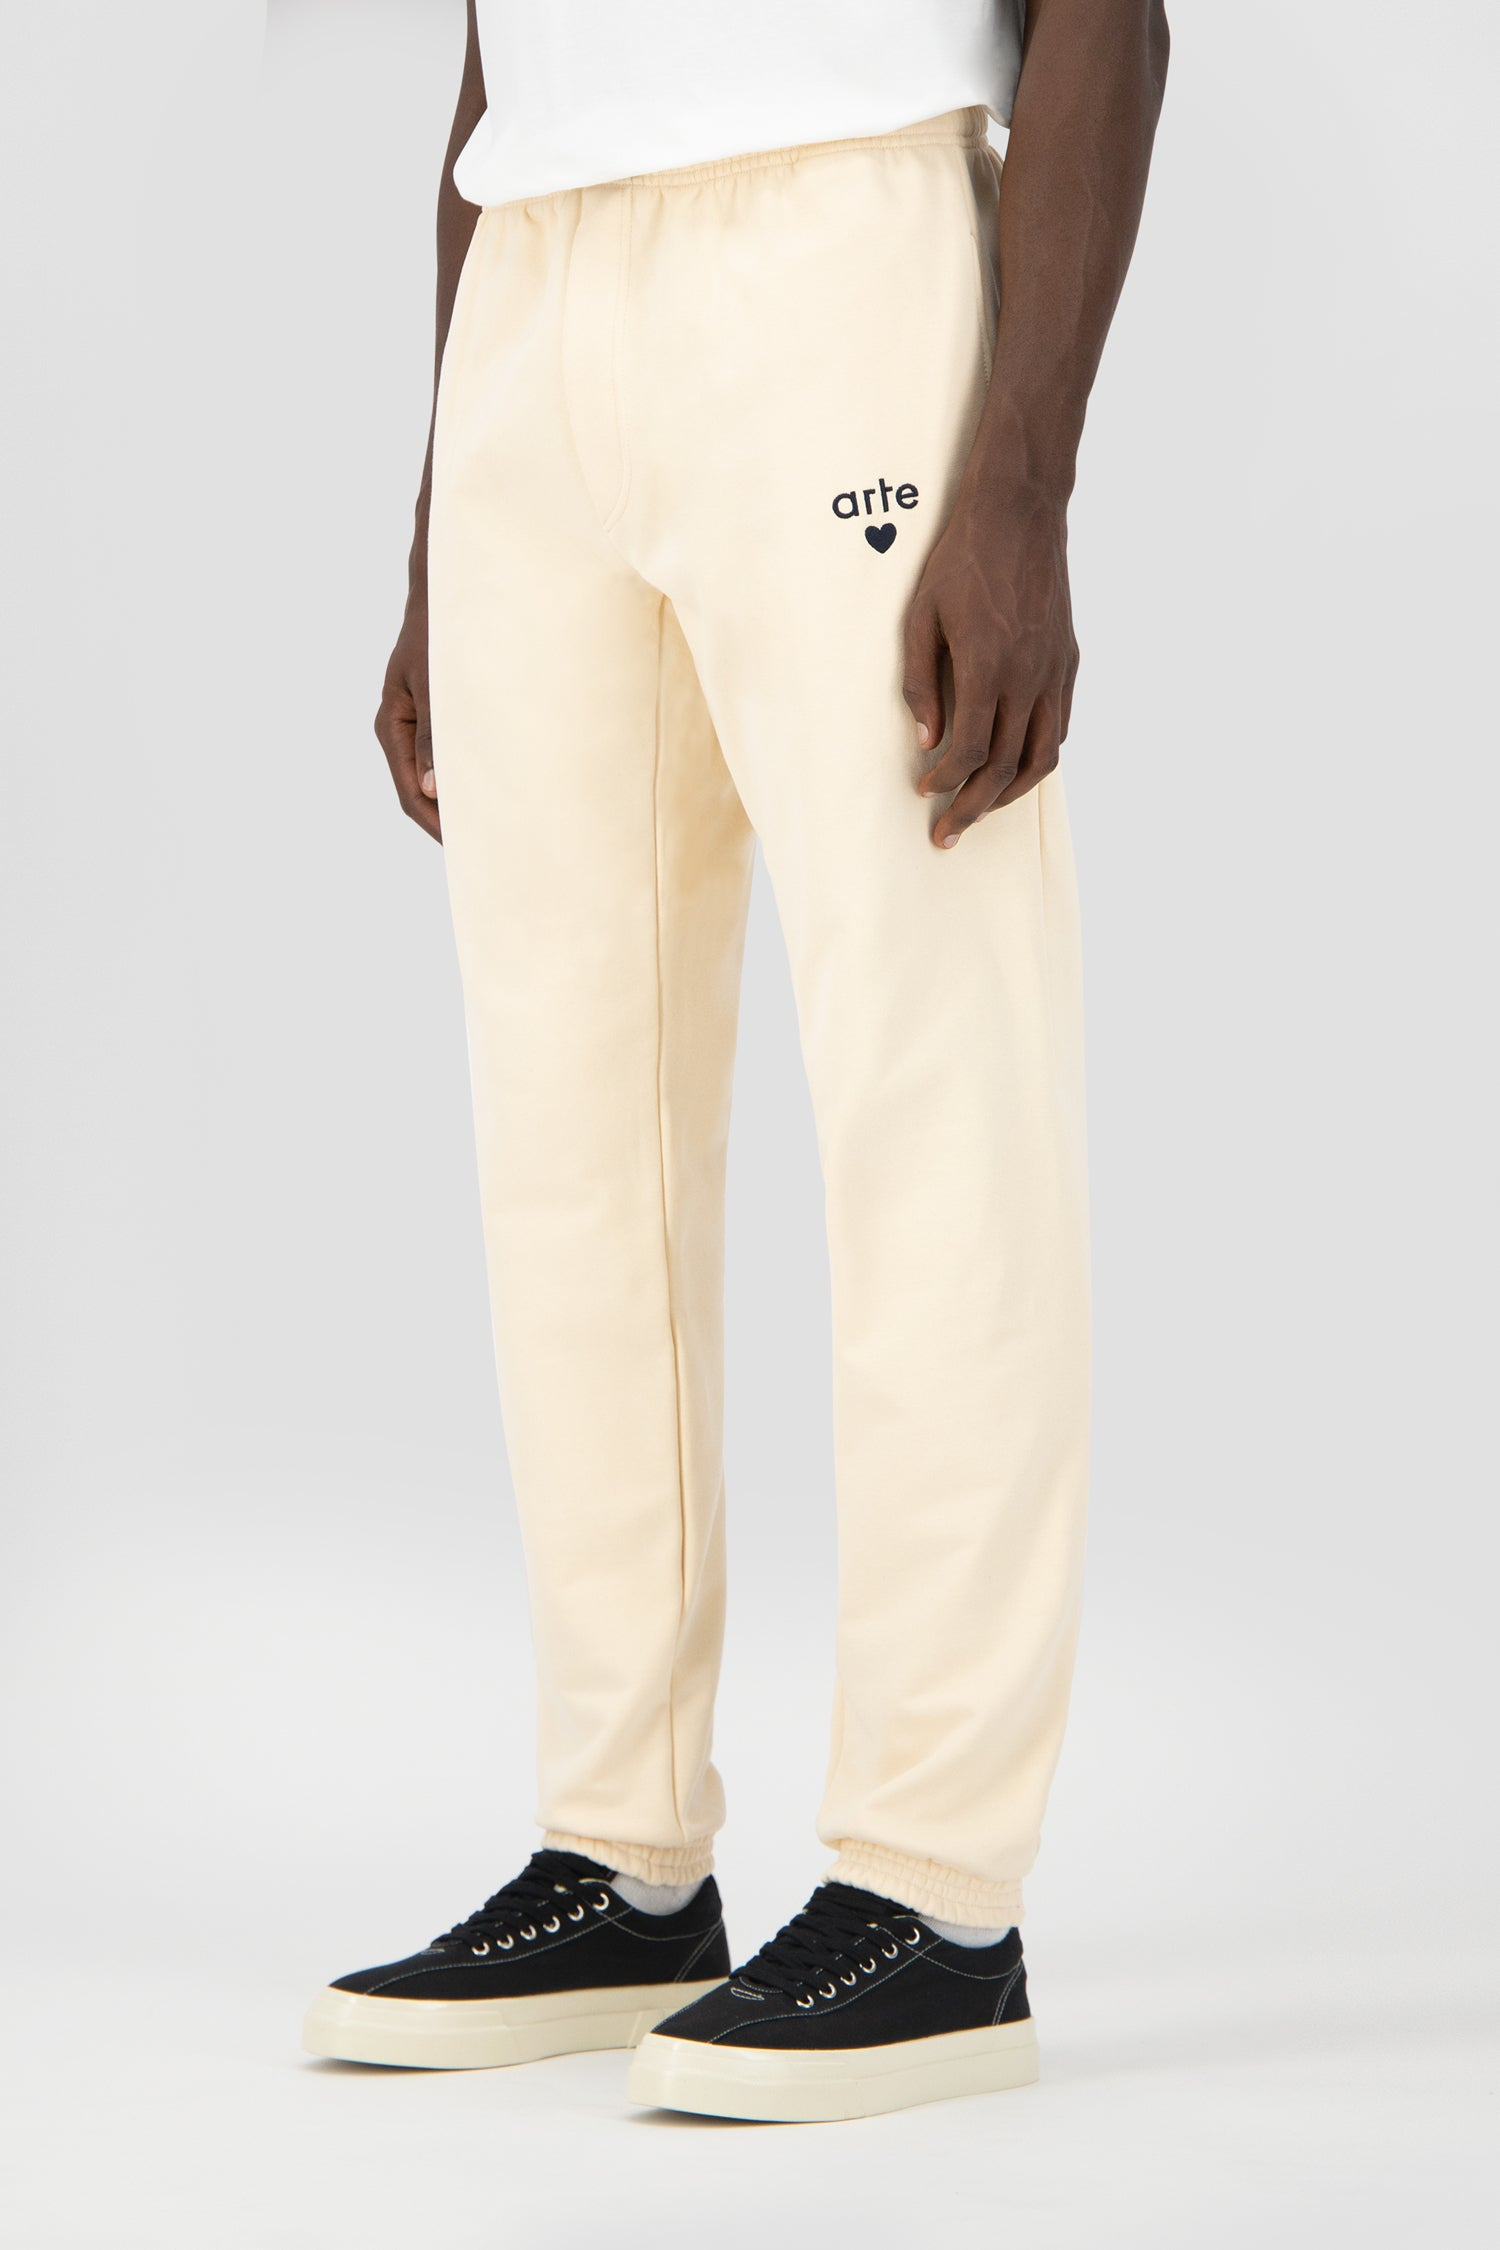 Tristian Heart Sweatpants - Creme